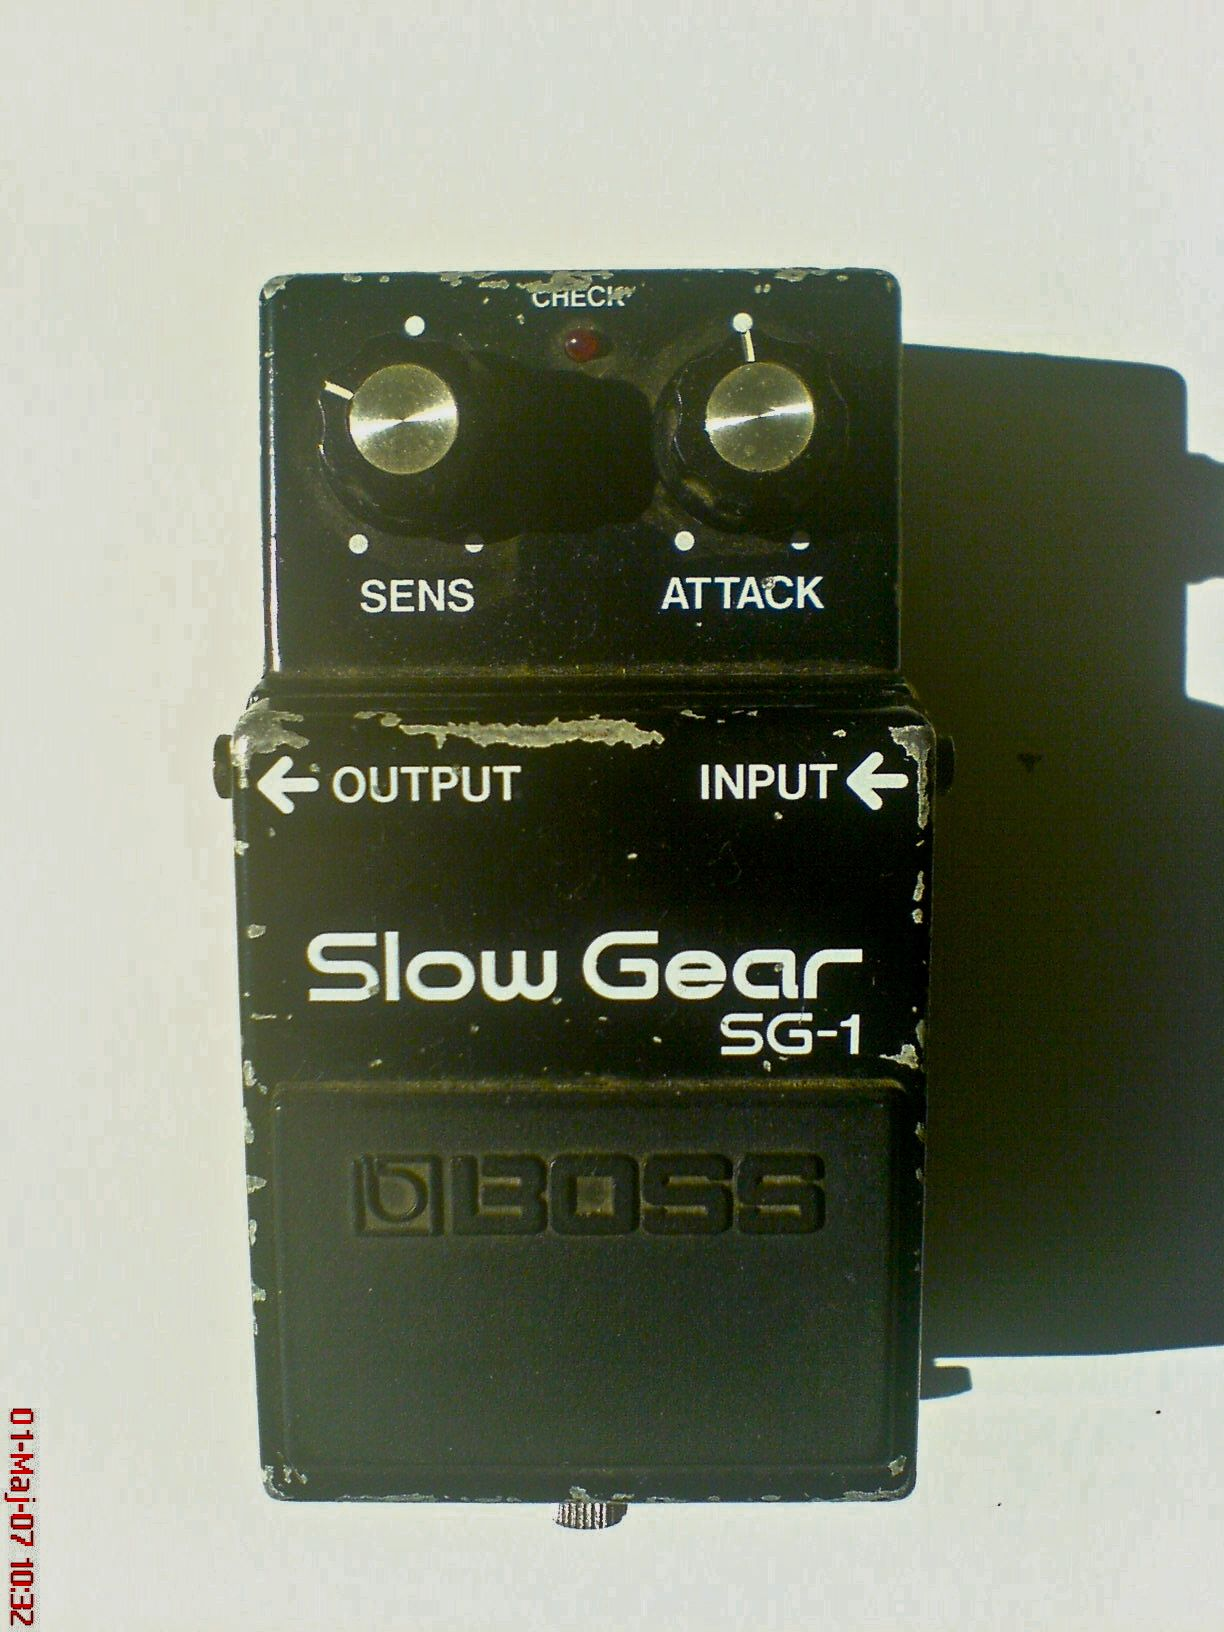 Vintage Effects Pedals And Boutique Effects Pedals For Sale Vintage Rare Diy Guitar Pedal Guitar Pedals Effects Pedals